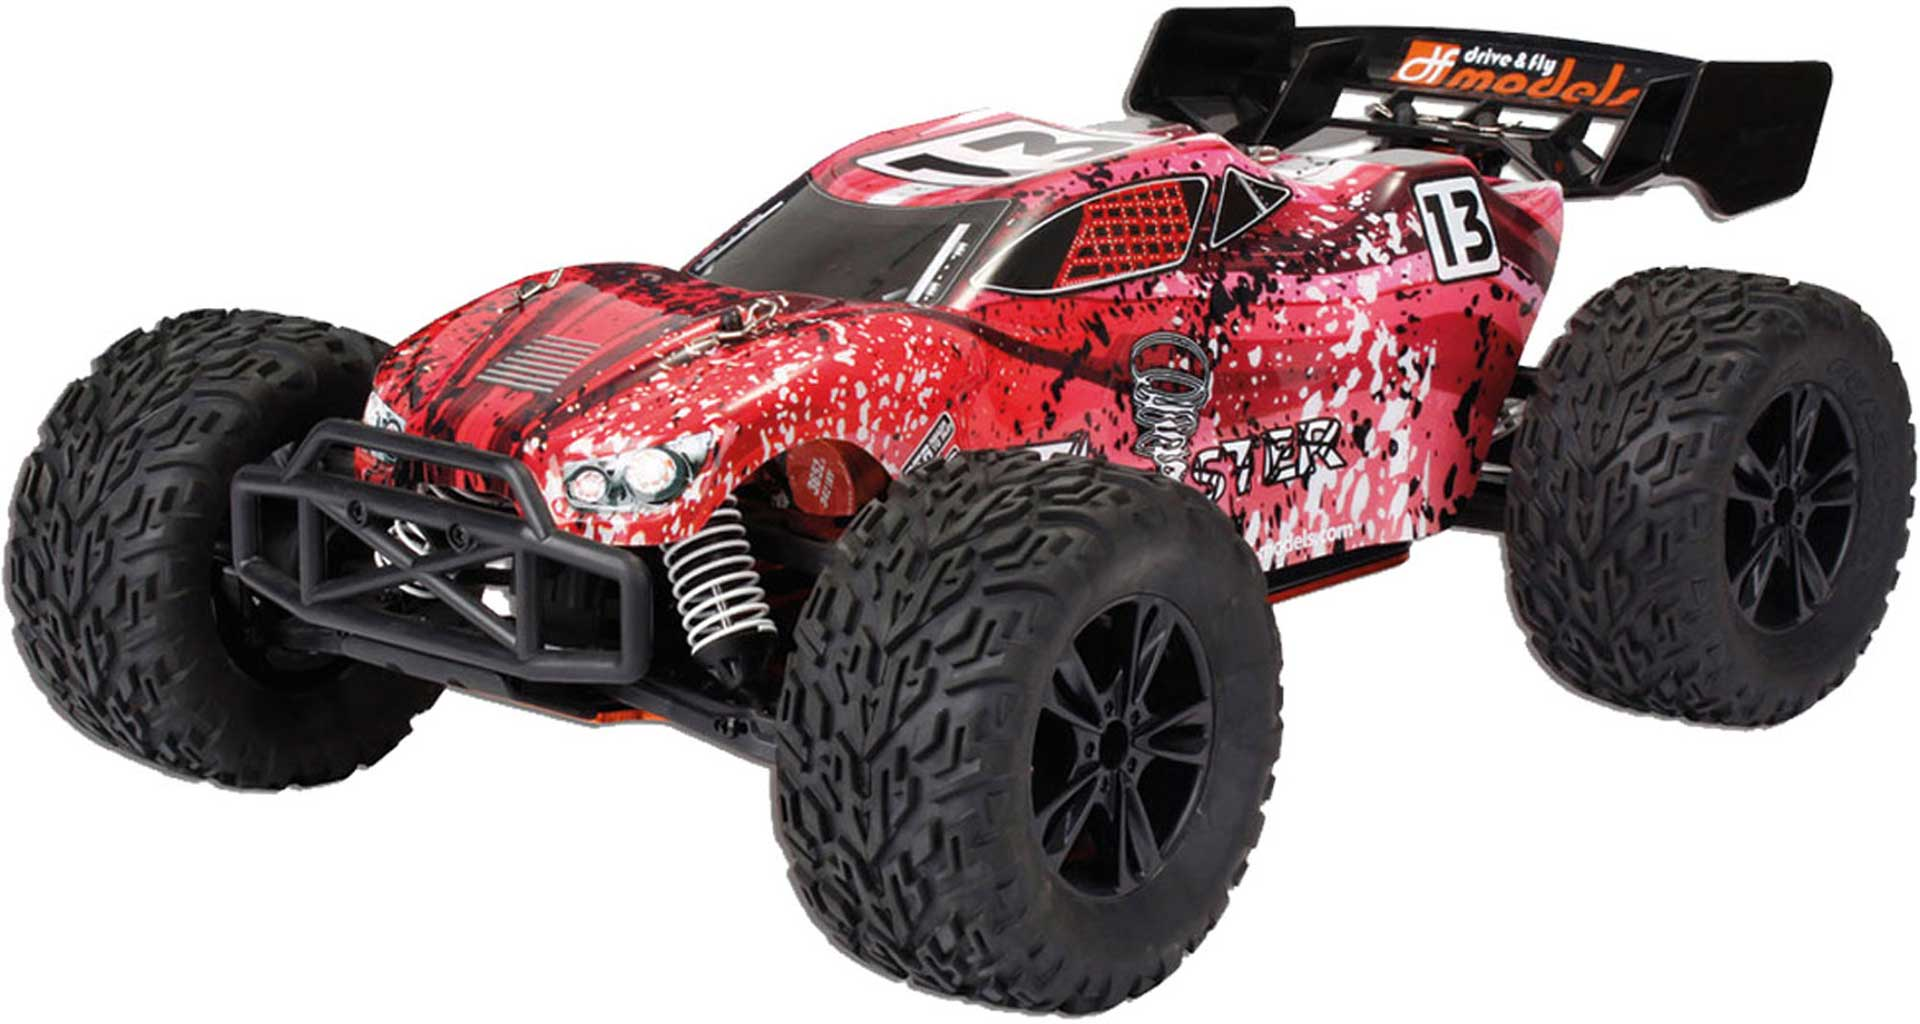 DRIVE & FLY MODELS TW-1 BL TRUGGY RTR BRUSHLESS 4WD 1/10XL ROT